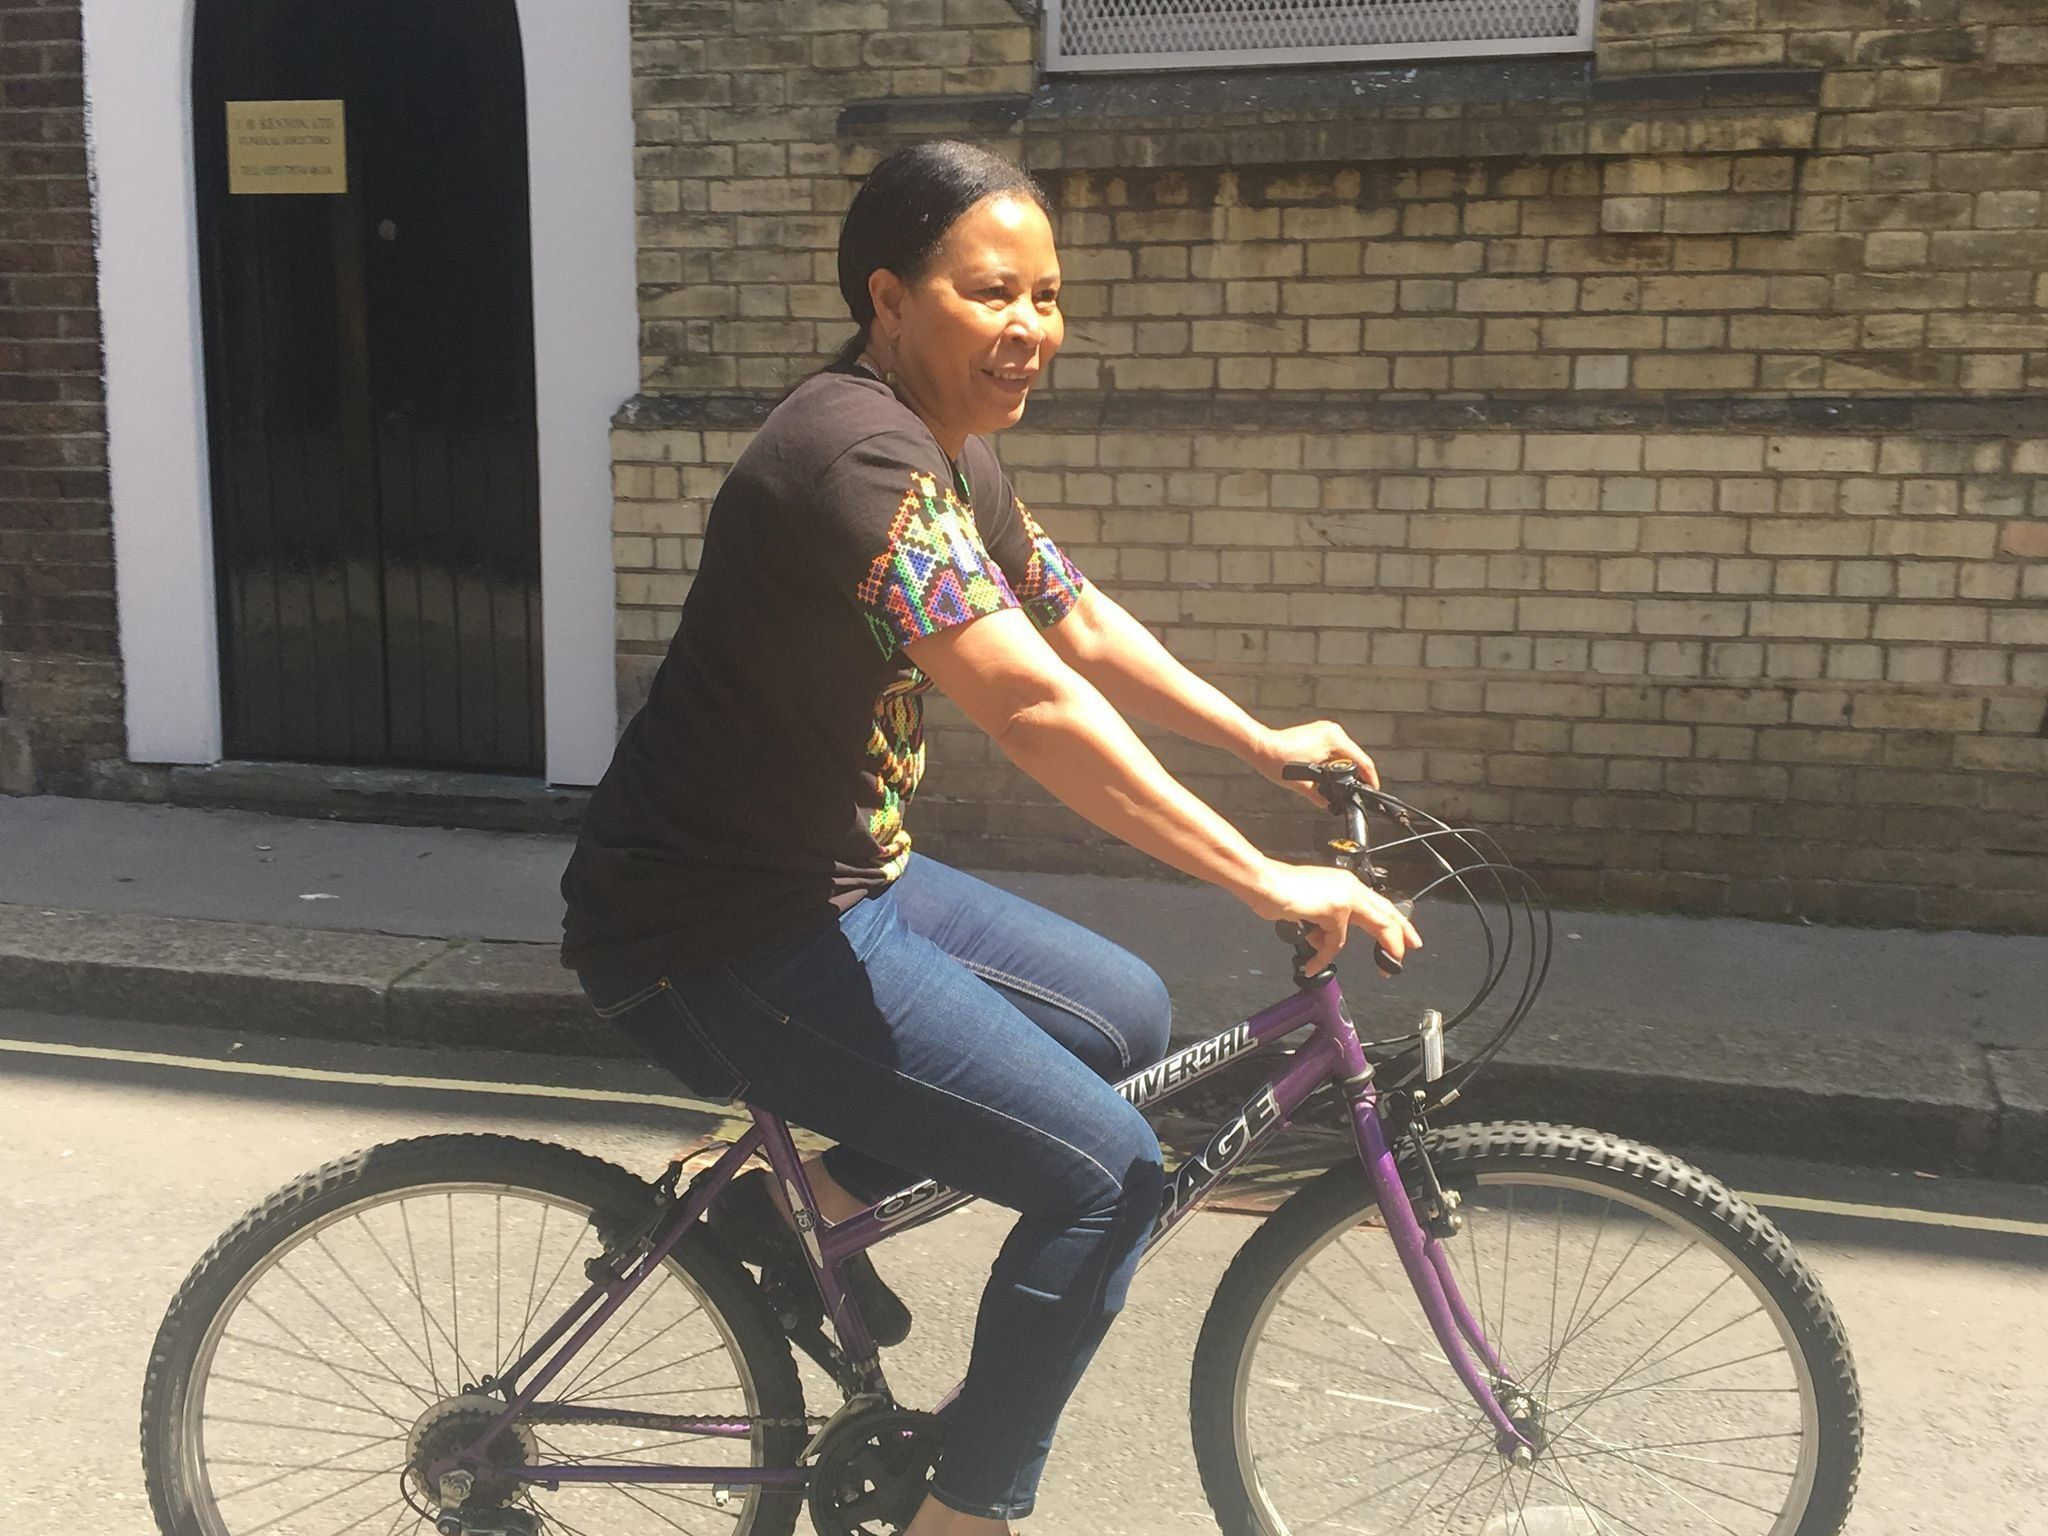 Why These Homeless Women Feel Empowered When They Get On Their Bikes